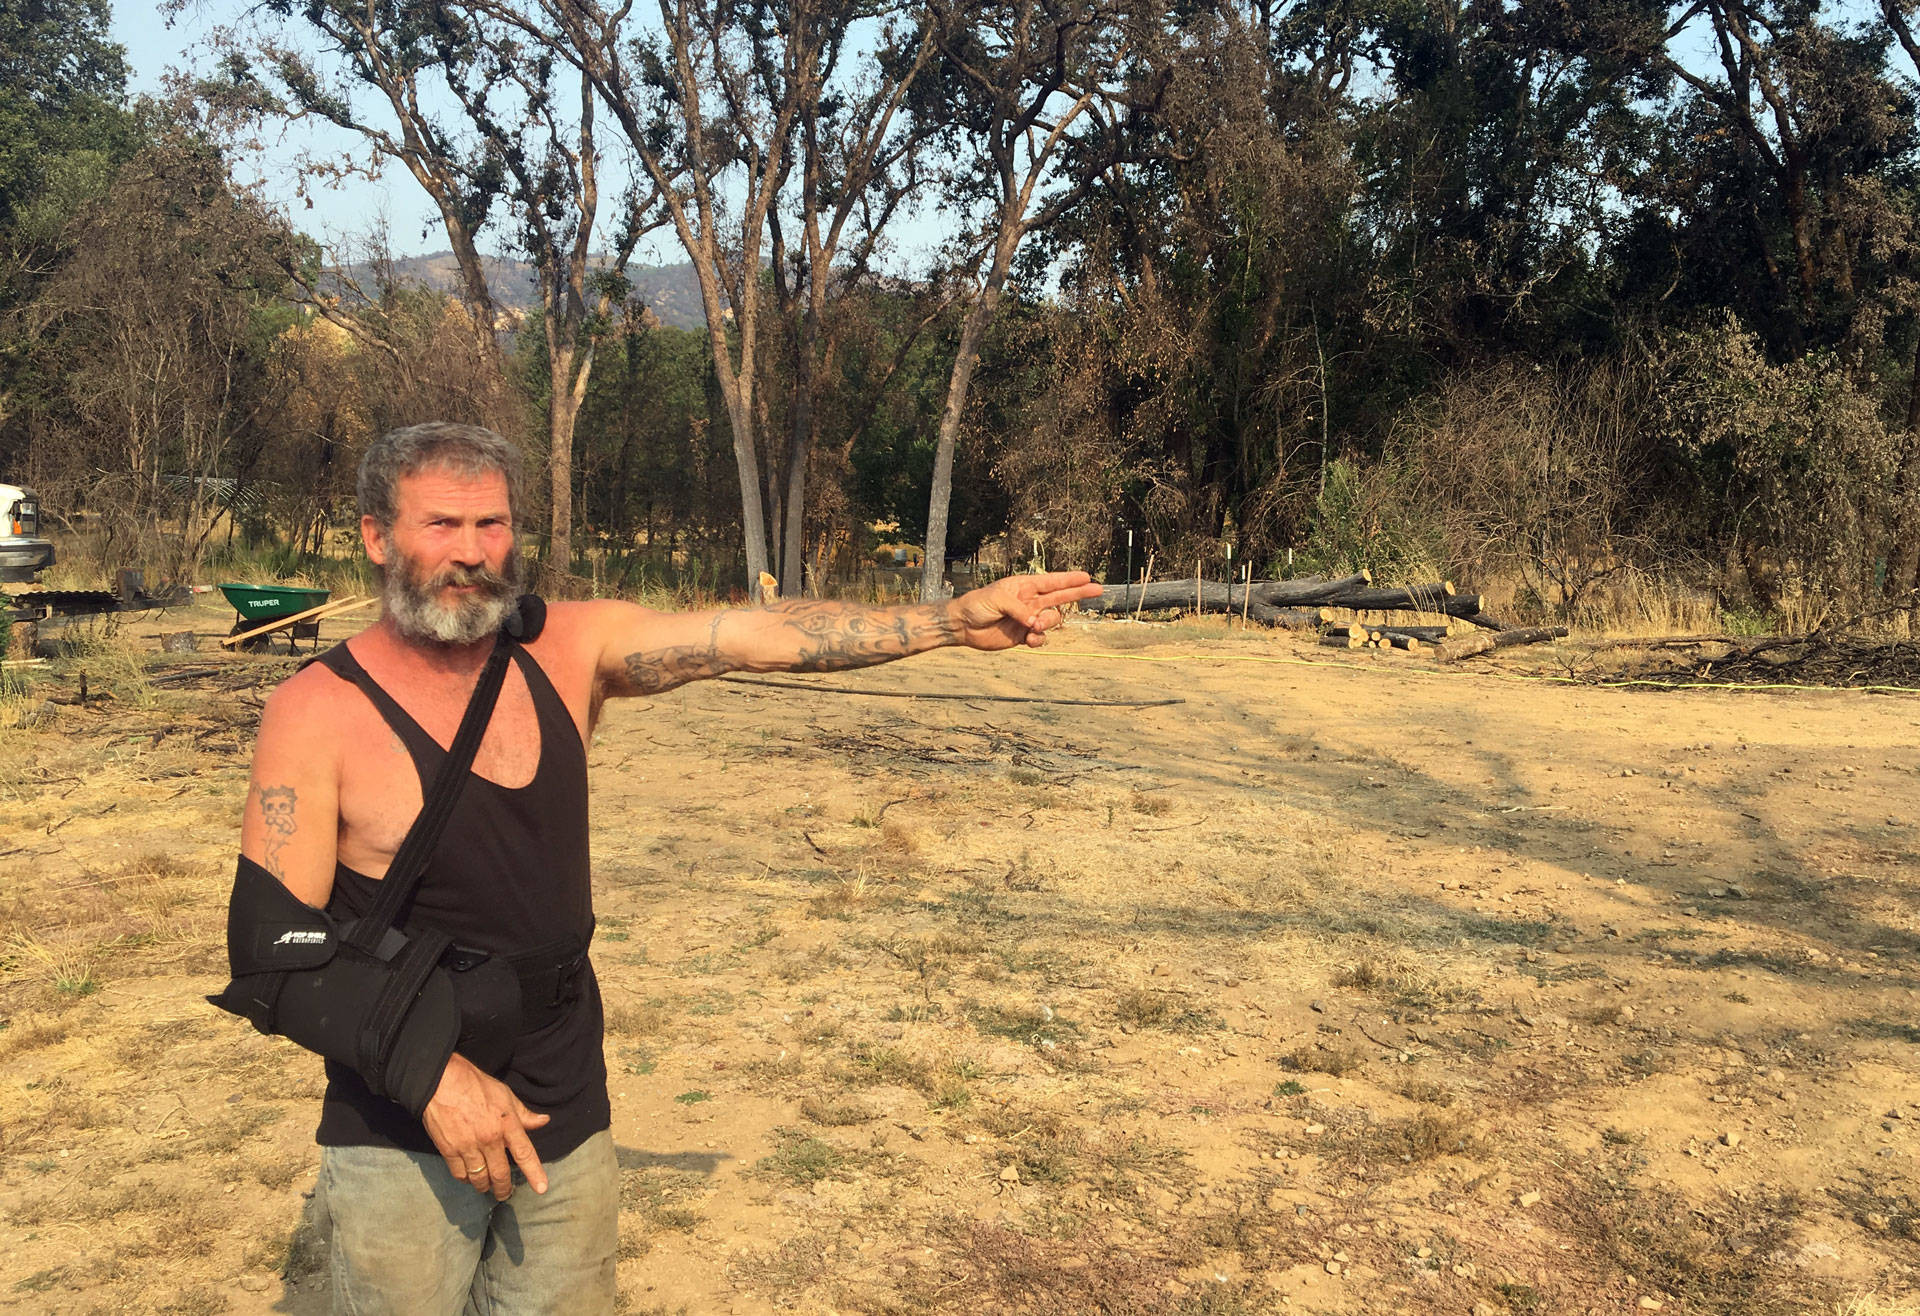 John Brackett points to where his home was destroyed by fire last October.  Sam Harnett/KQED